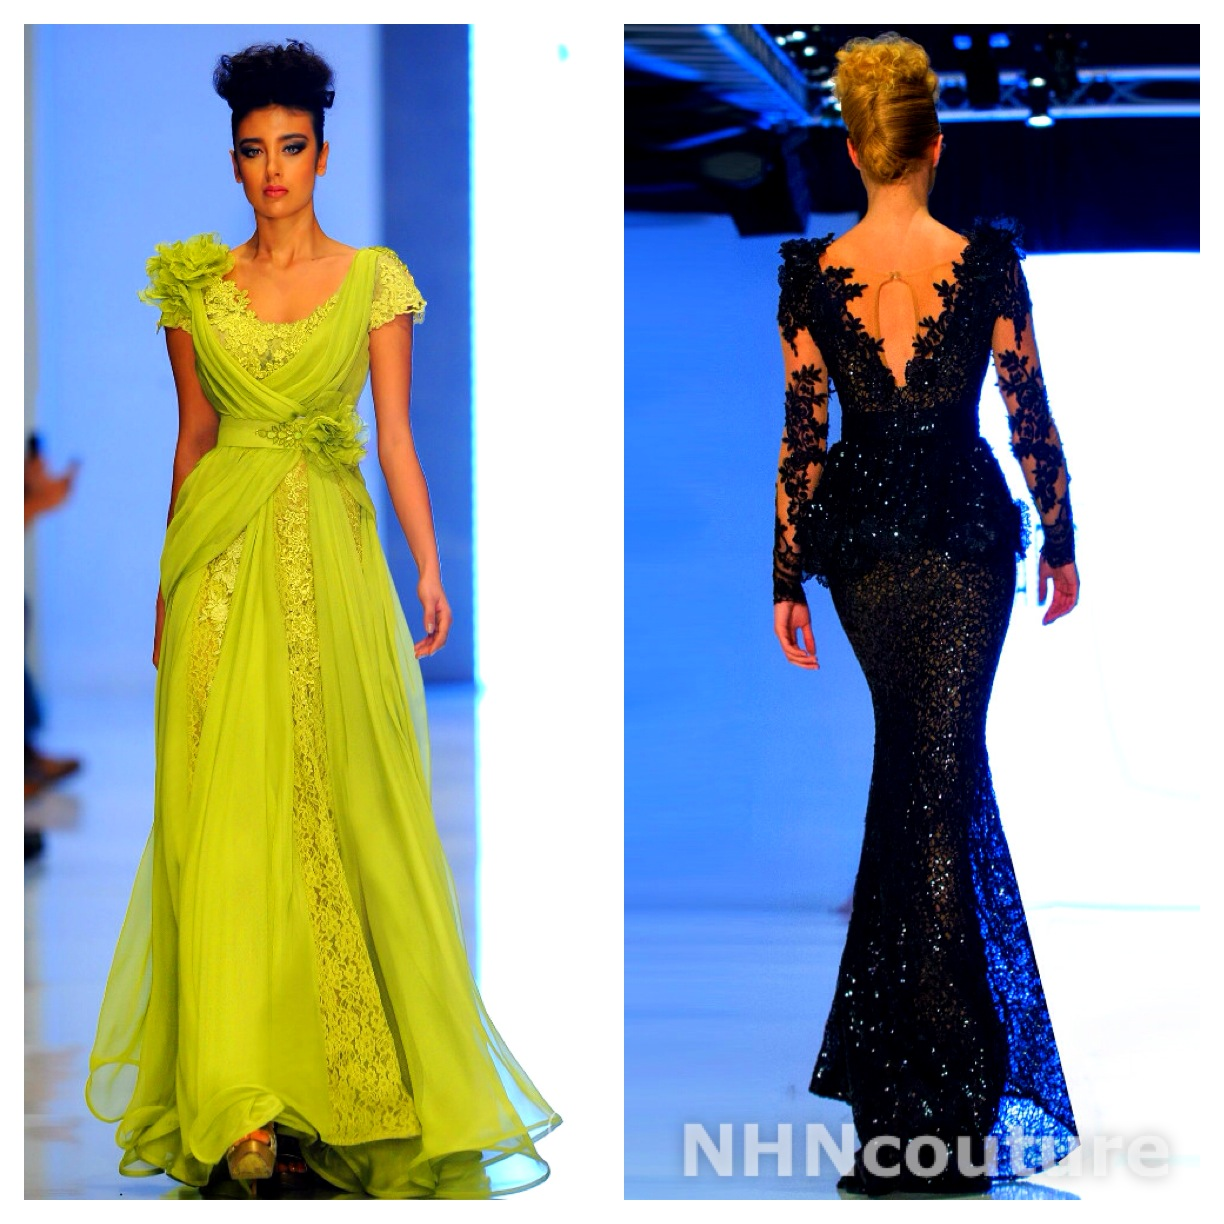 NHN Couture-Fouad Couture Nigeria 3